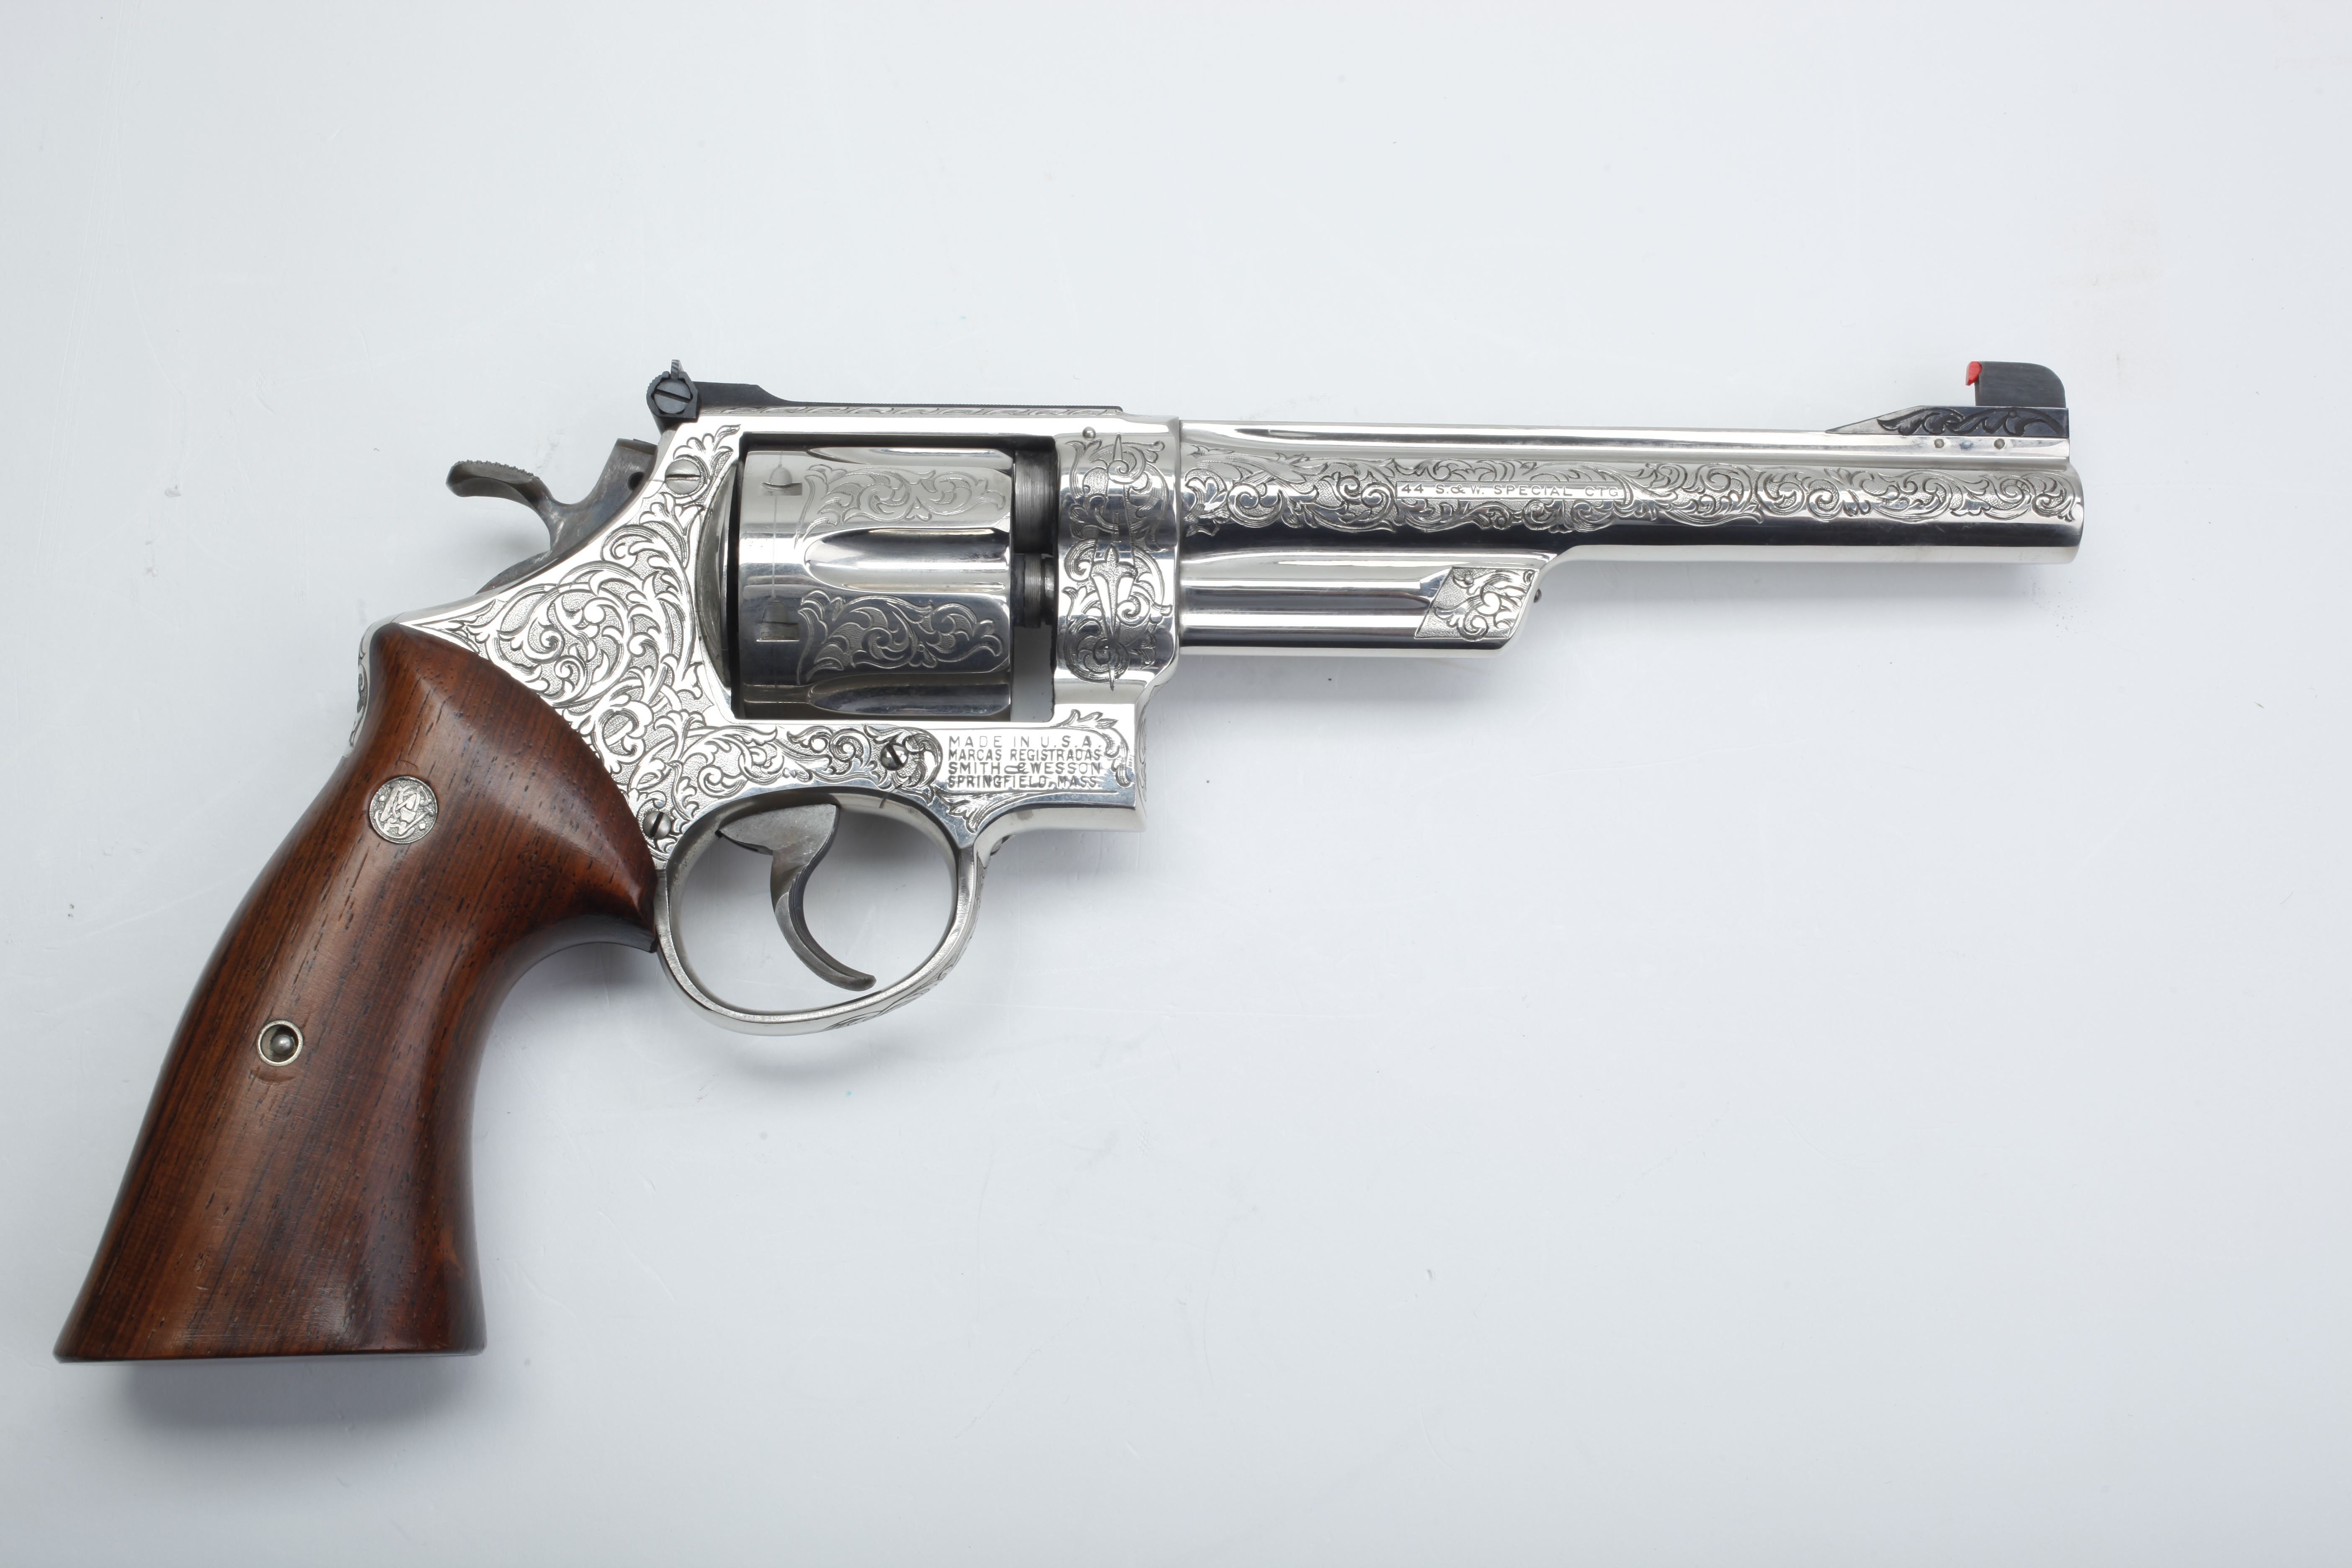 Smith & Wesson 1950 Model